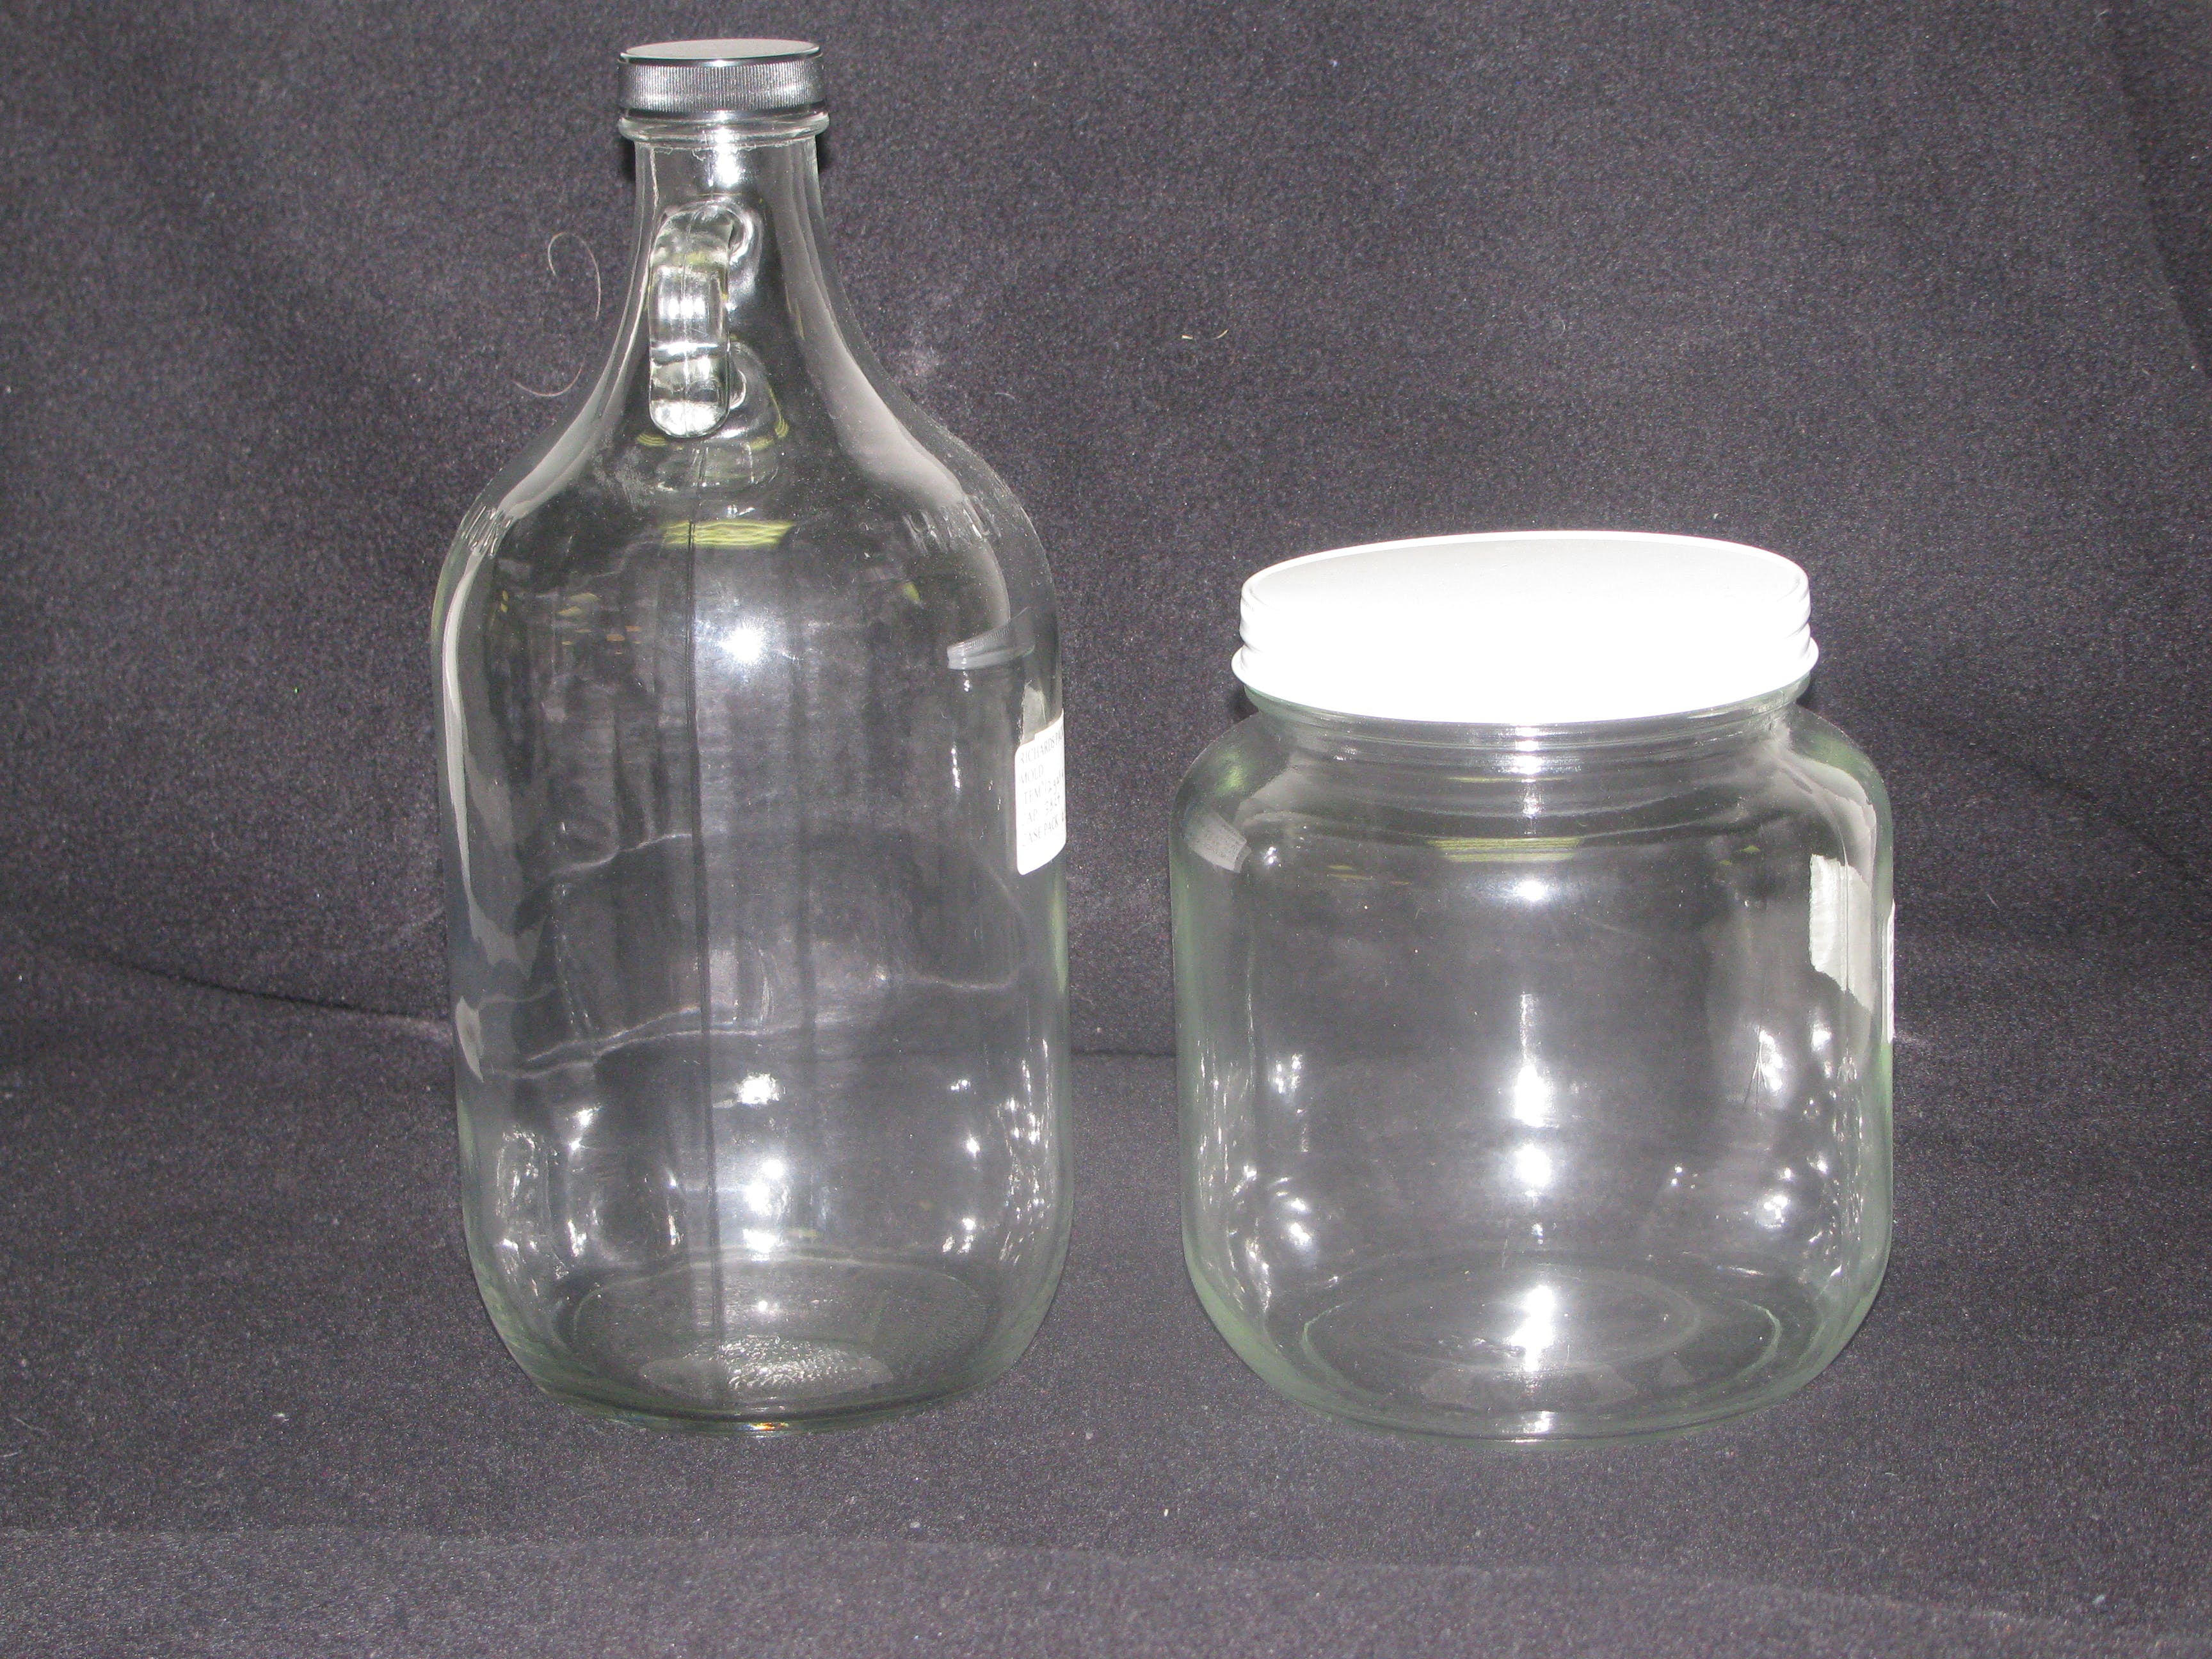 1/2 Gallon Jugs Growler sold by Richards Packaging